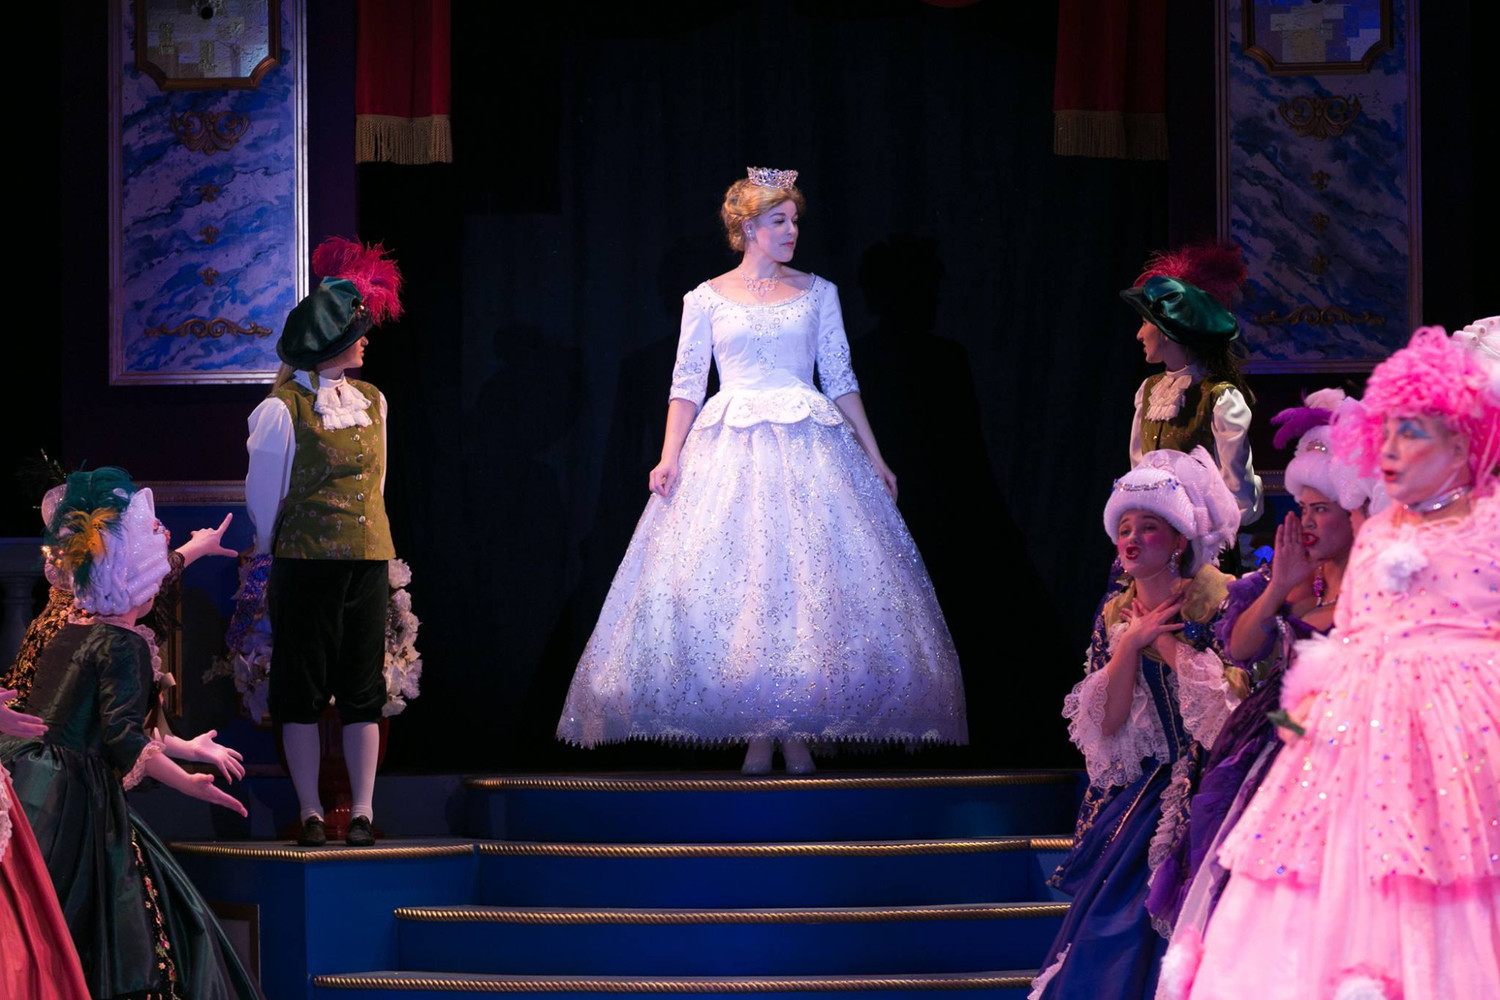 BWW Review: Steeped in Tradition, Raleigh Little Theatre's CINDERELLA Brims with Enchantment